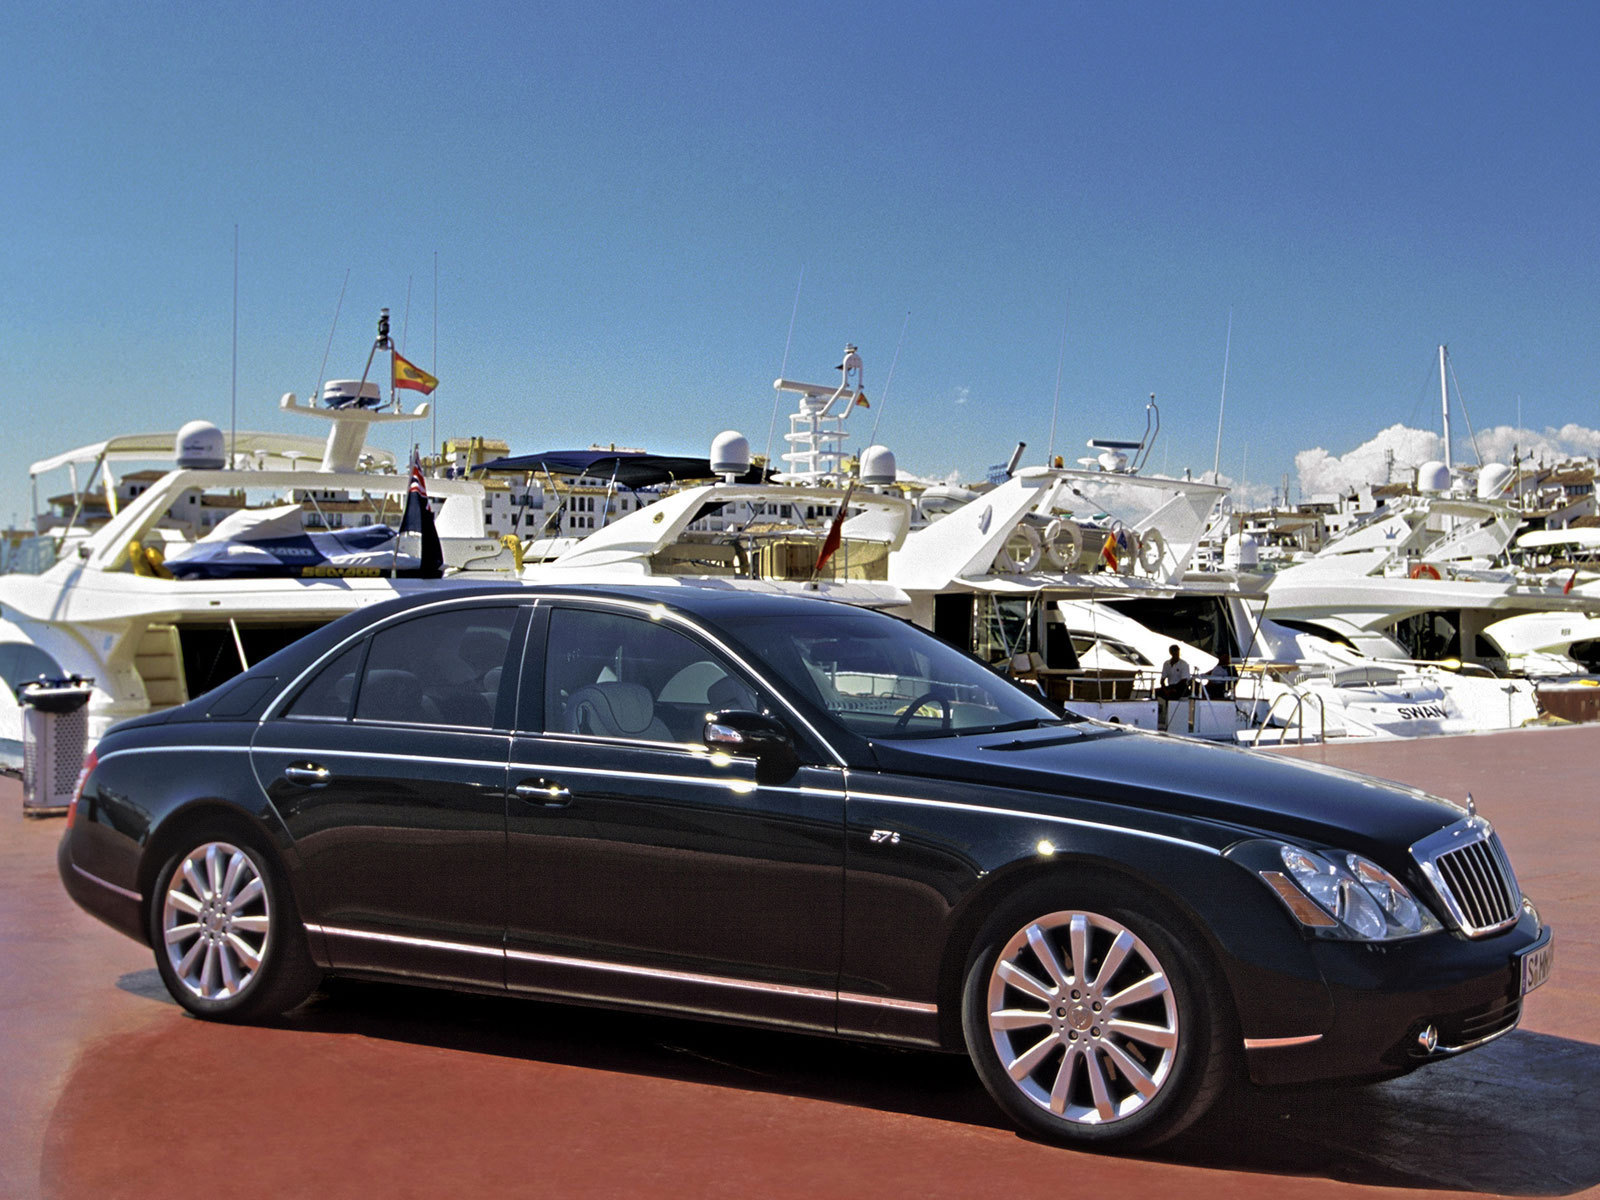 original wallpaper download: Photos of the car Maybach 57 - 1600x1200